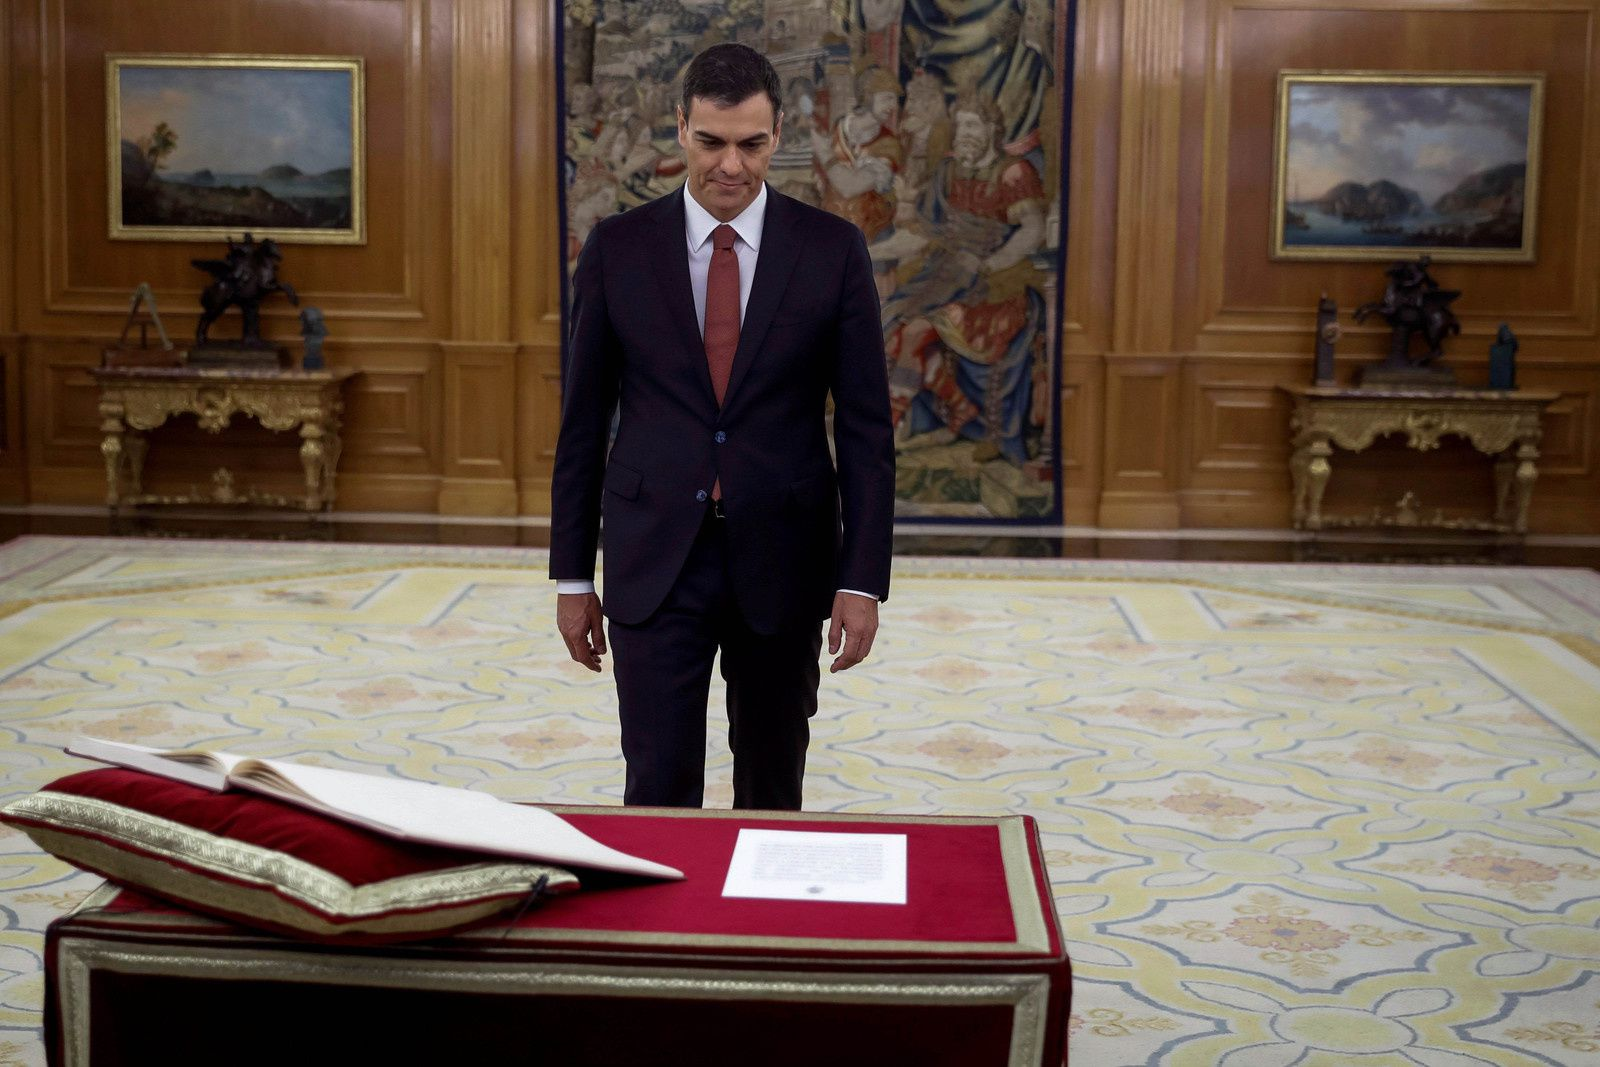 Spain's new Prime Minister Pedro Sanchez during the swearing in ceremony at the Zarzuela Palace in Madrid, Spain Photo: PPE/SIPA USA/PA Images